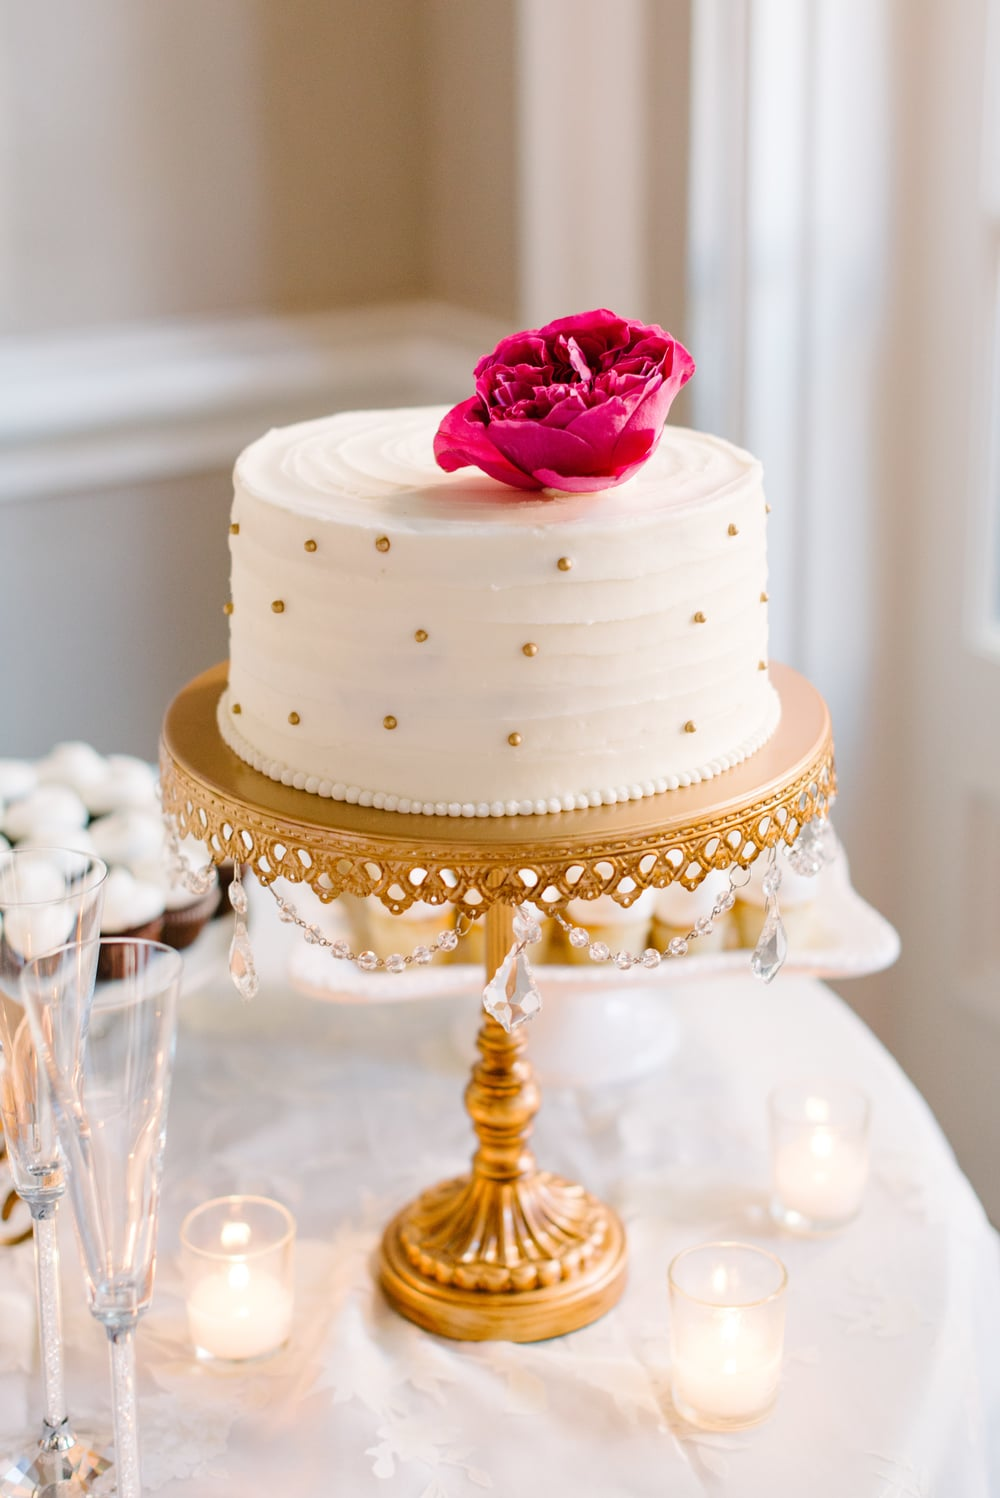 Gold polka dot cake by Ashley Bakery at Mills House Hotel wedding